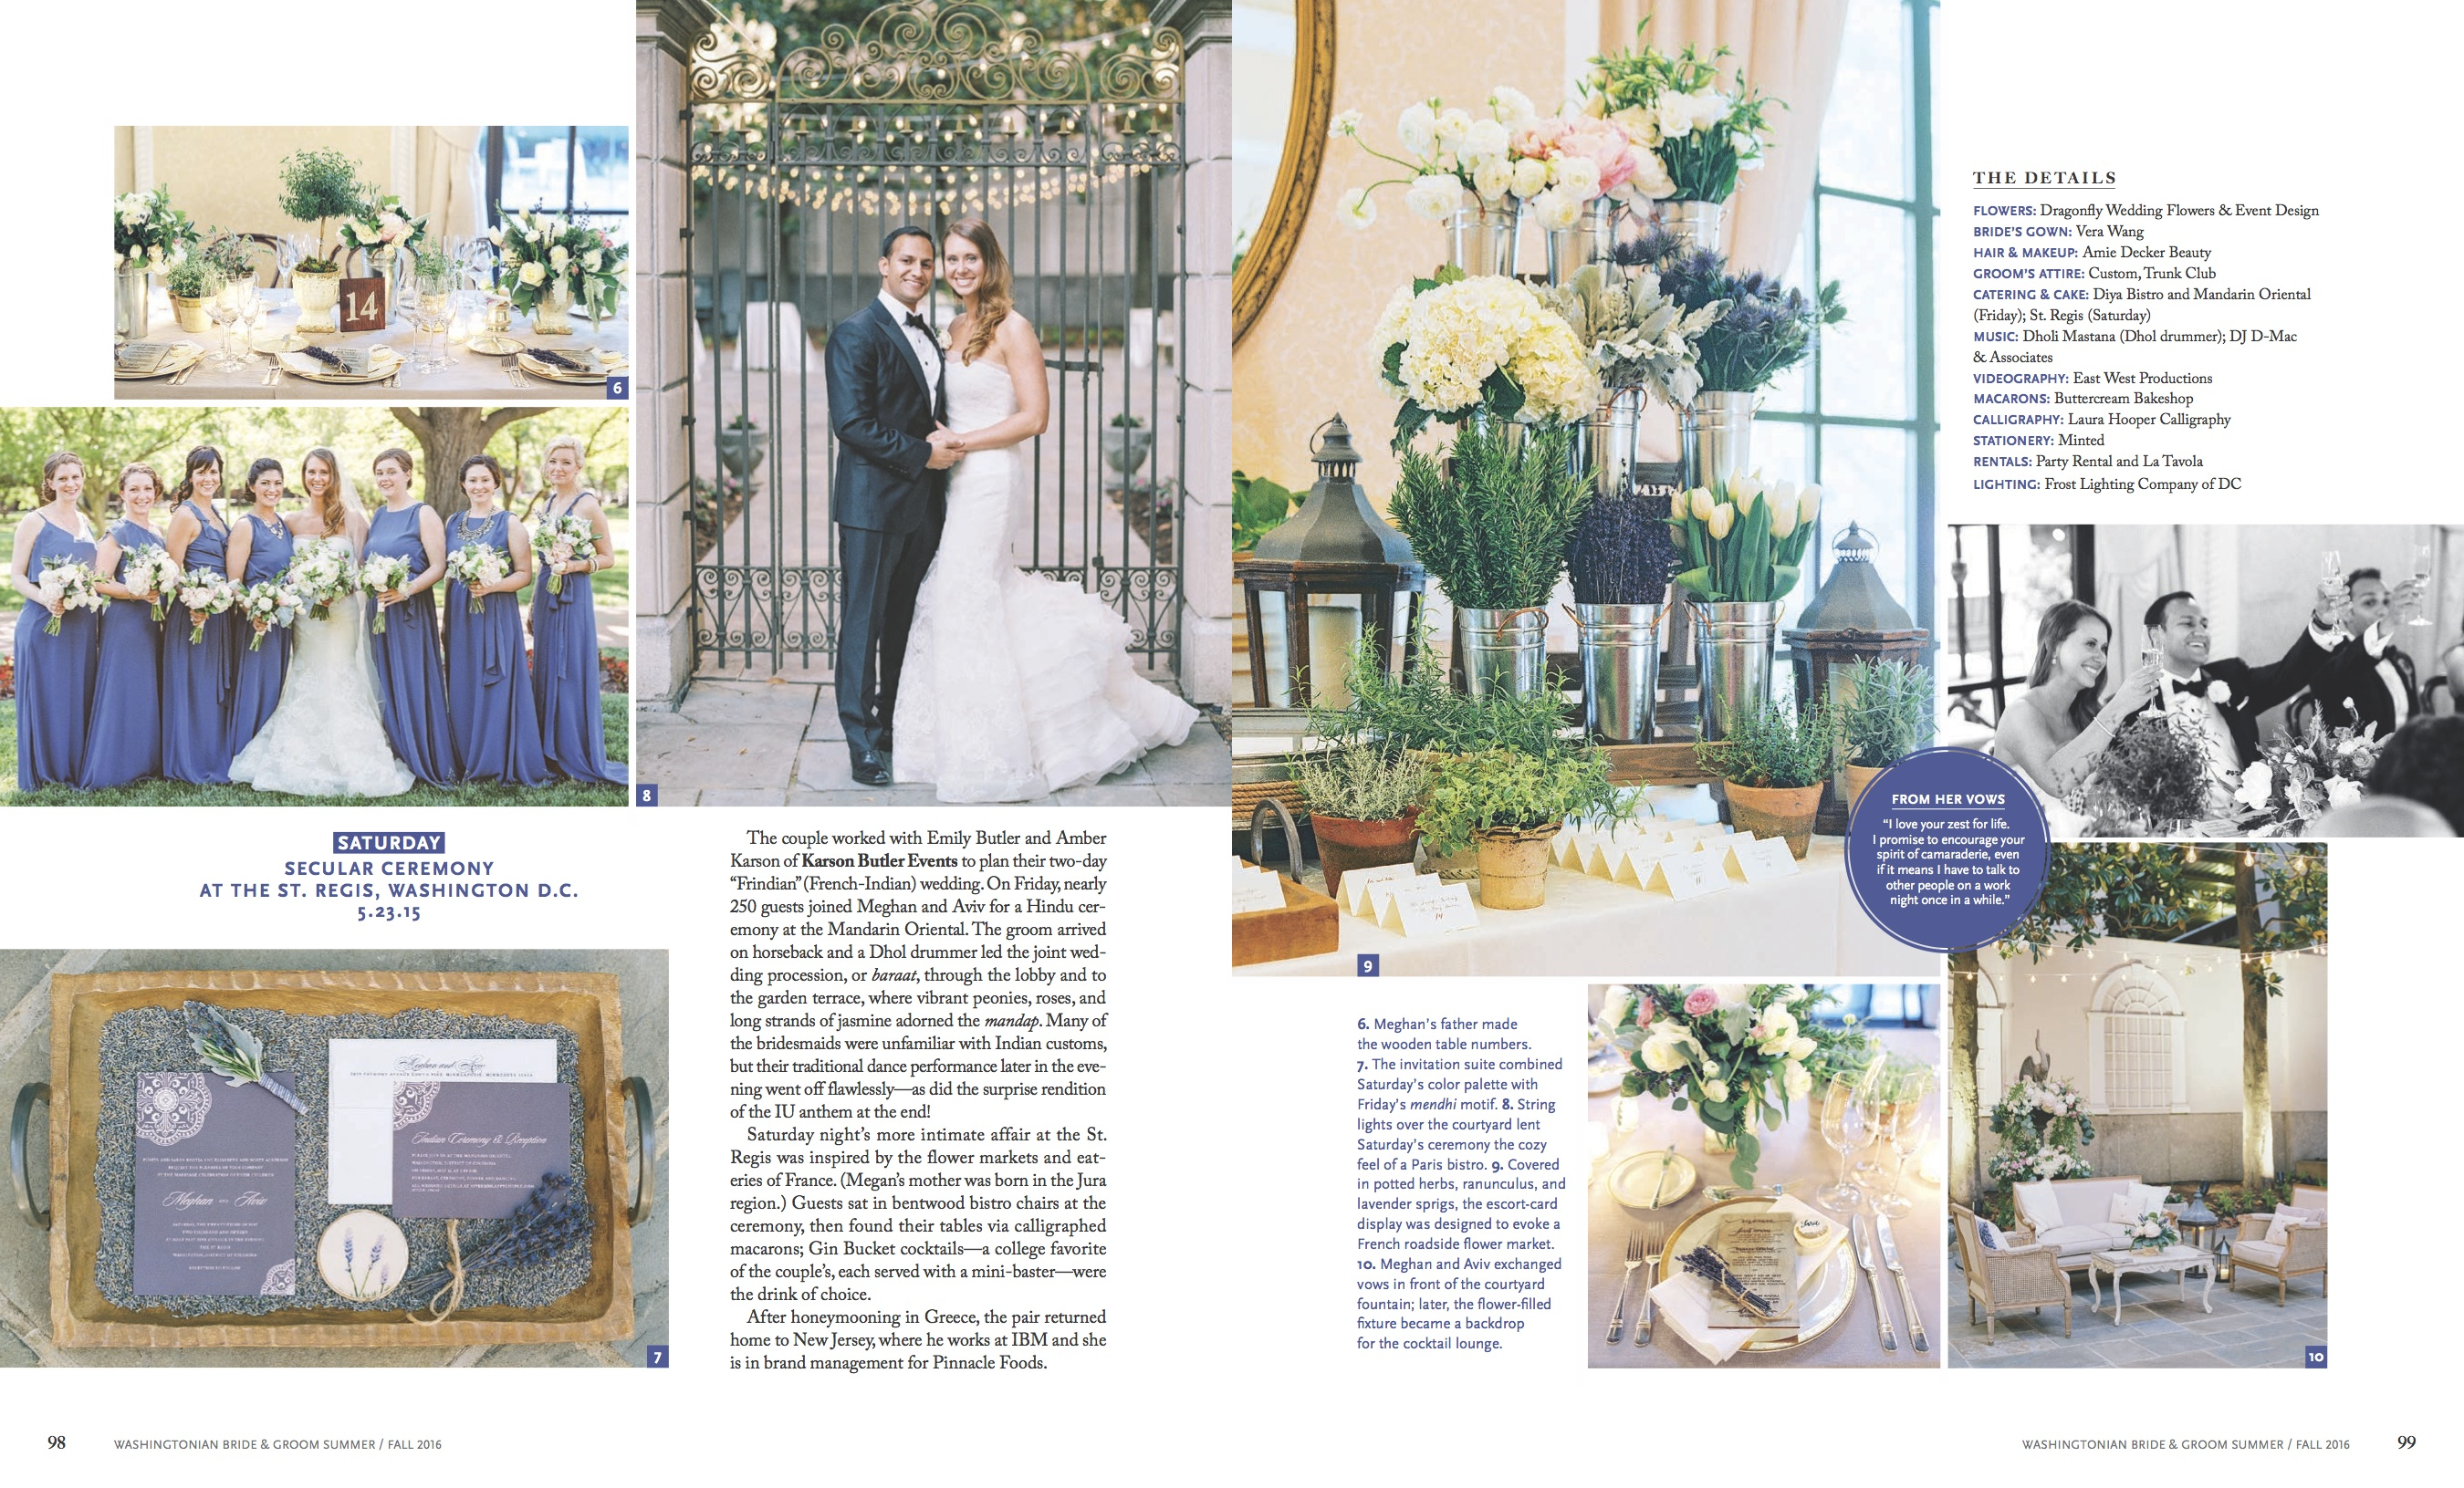 Washingtonian Bride & Groom: A Tale of Two Weddings